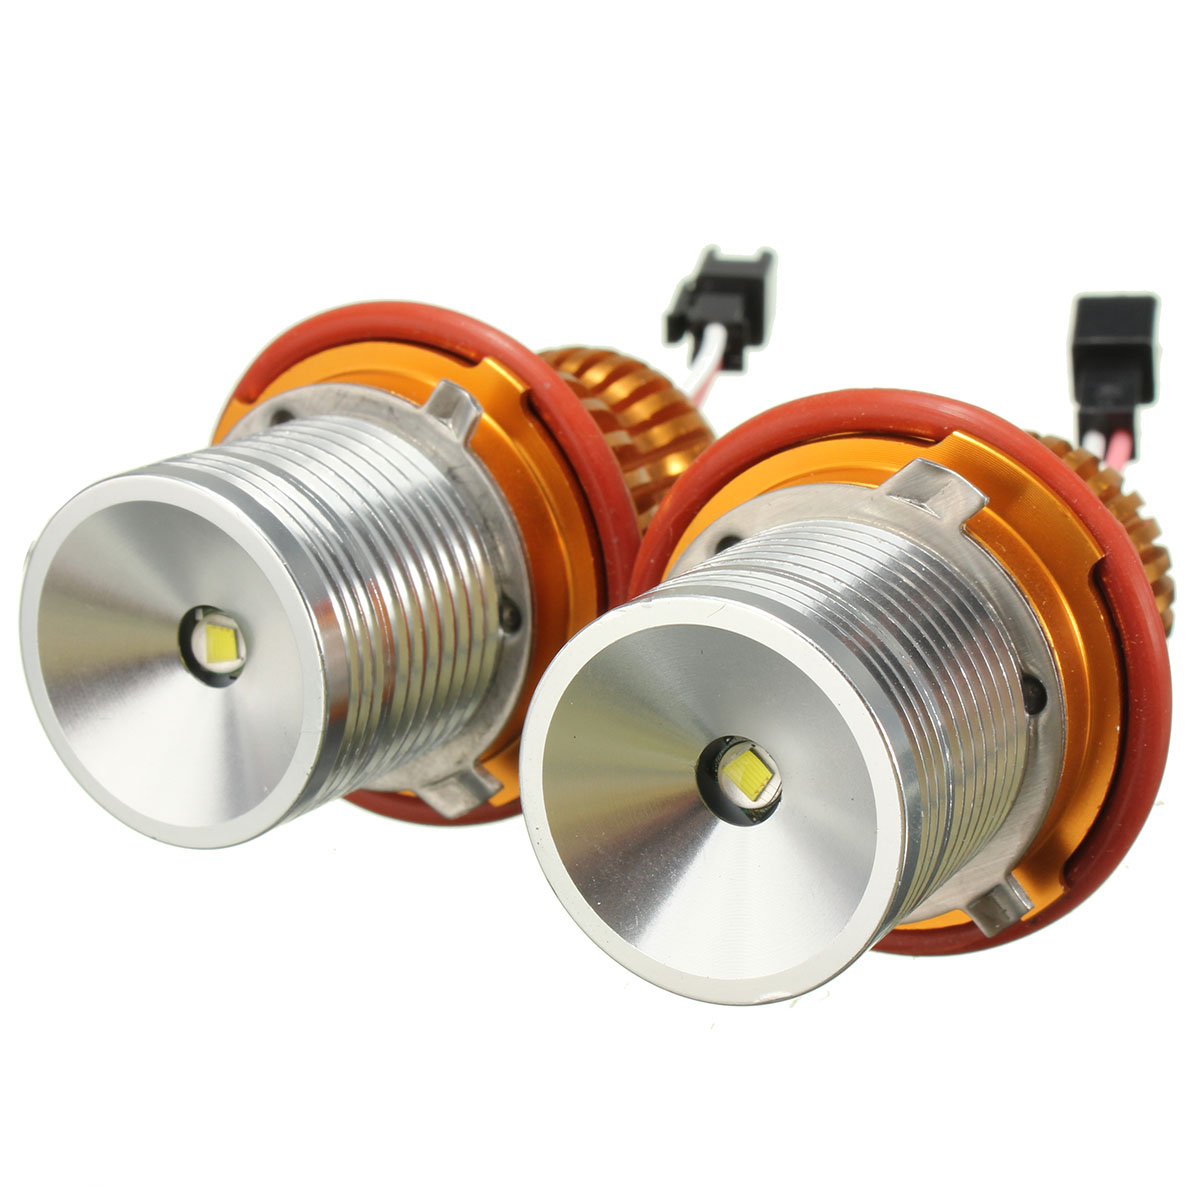 10 W (5 W * 2 Stks) 12 V Led Koplamp Angel Eyes Halo Ringen Bulb Lamp 6000 K 1200lm Wit Licht Voor Bmw E39/e60 X3 X5